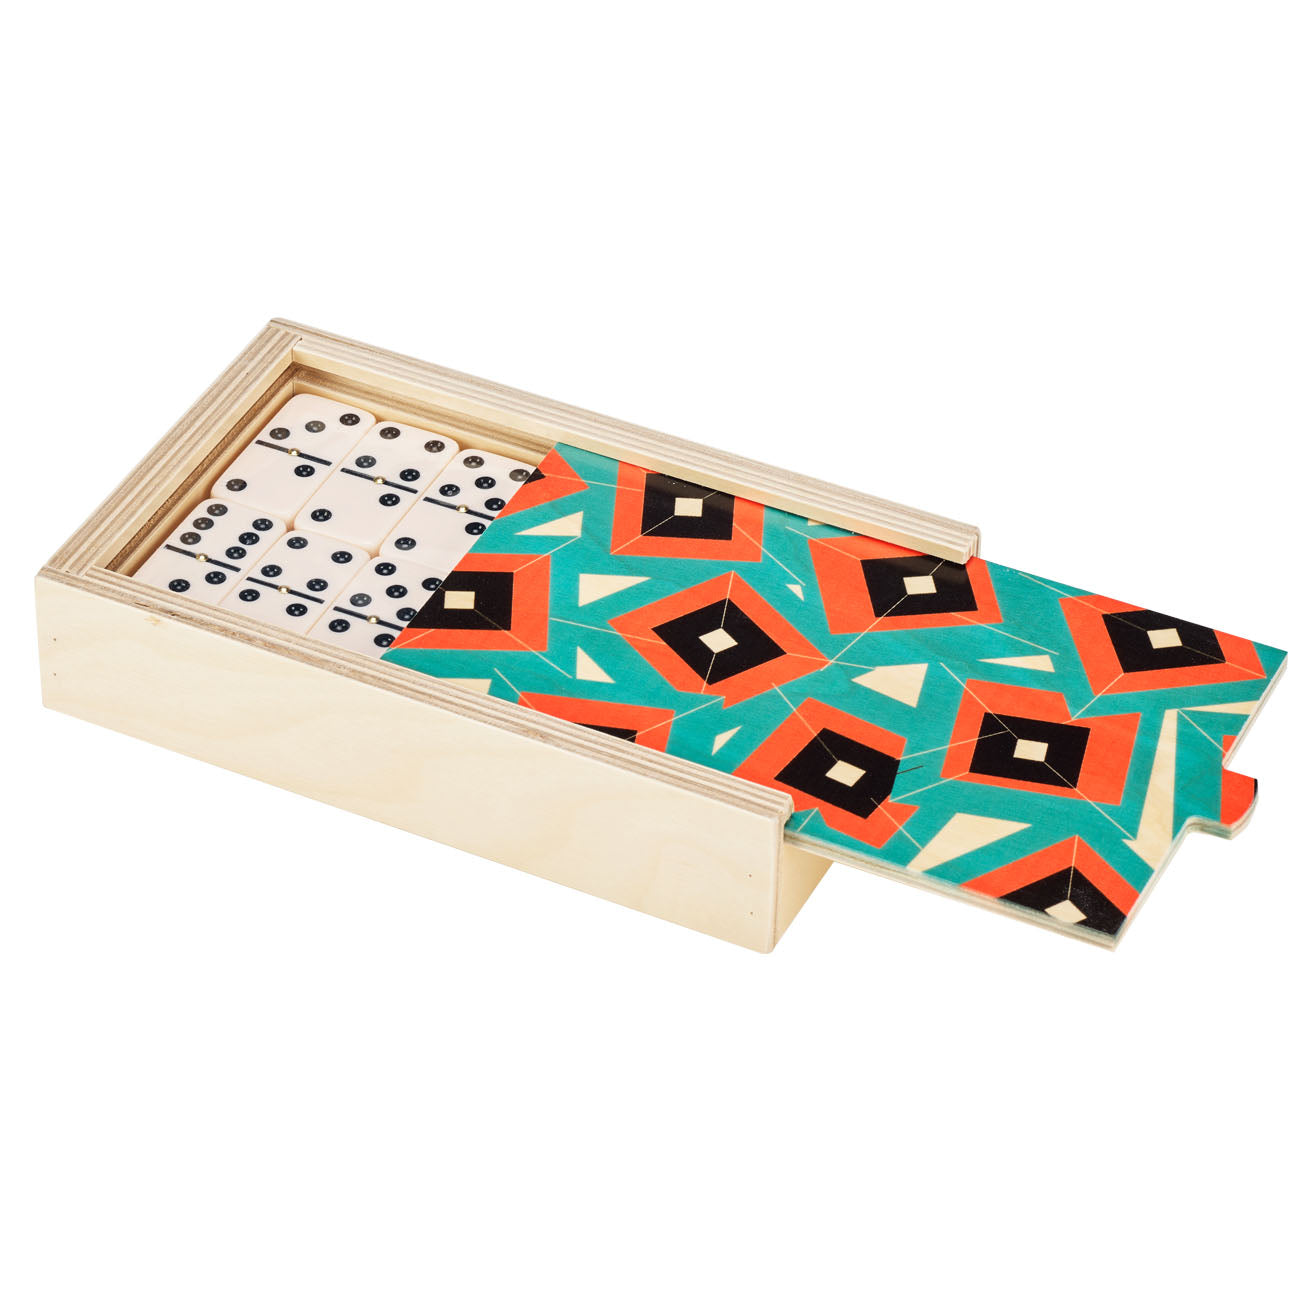 alma teal domino set